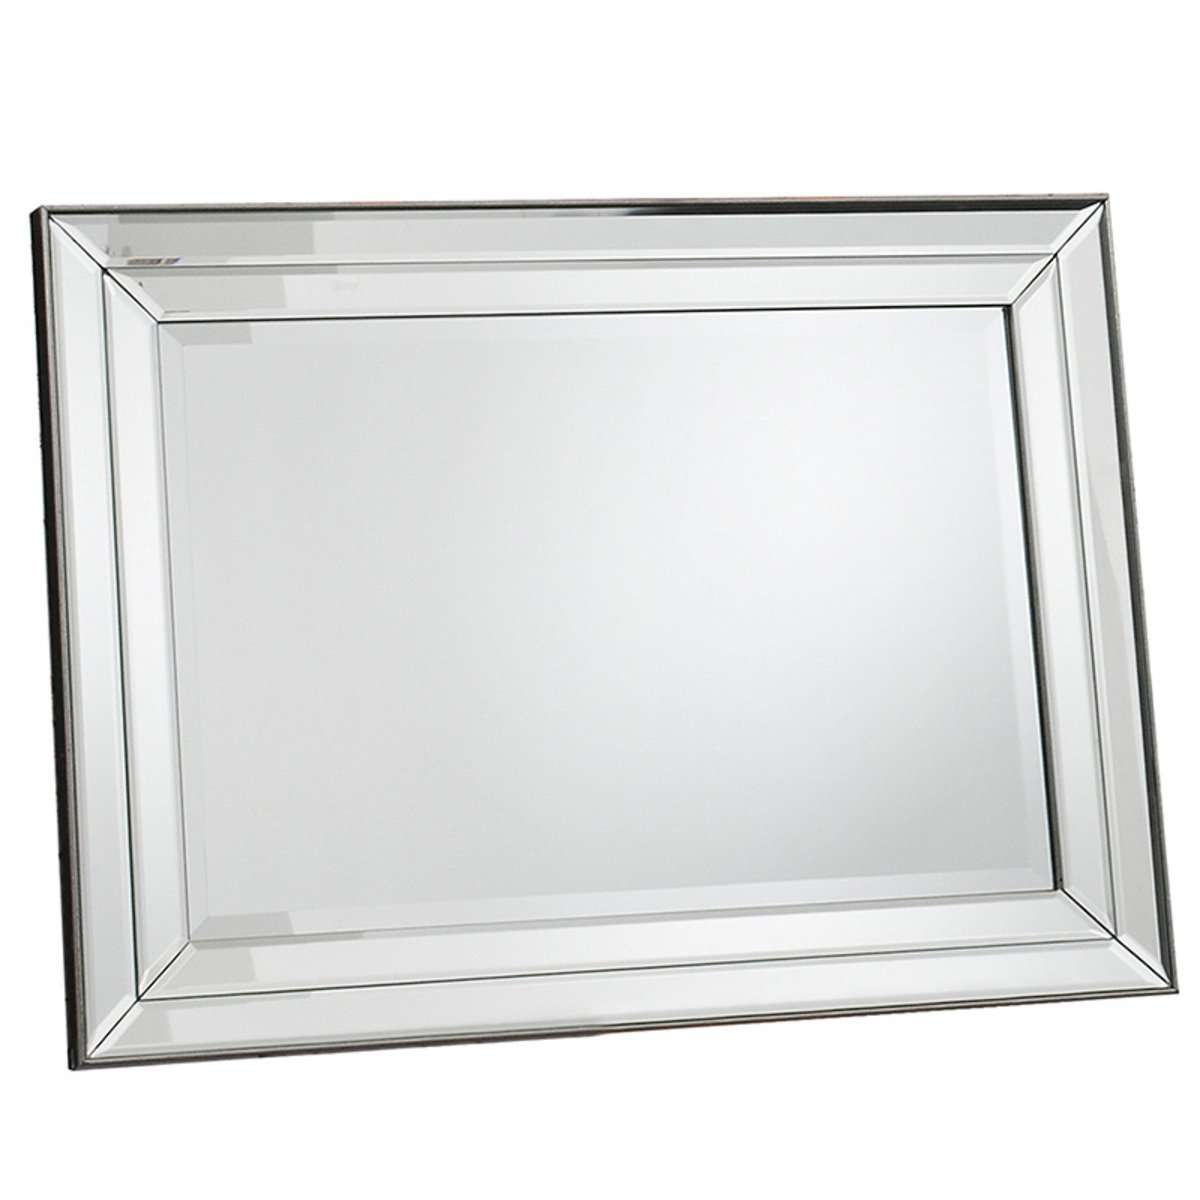 Gallery Roswell Mirror in 3 SizesGallery Roswell Mirror in 3 Sizes